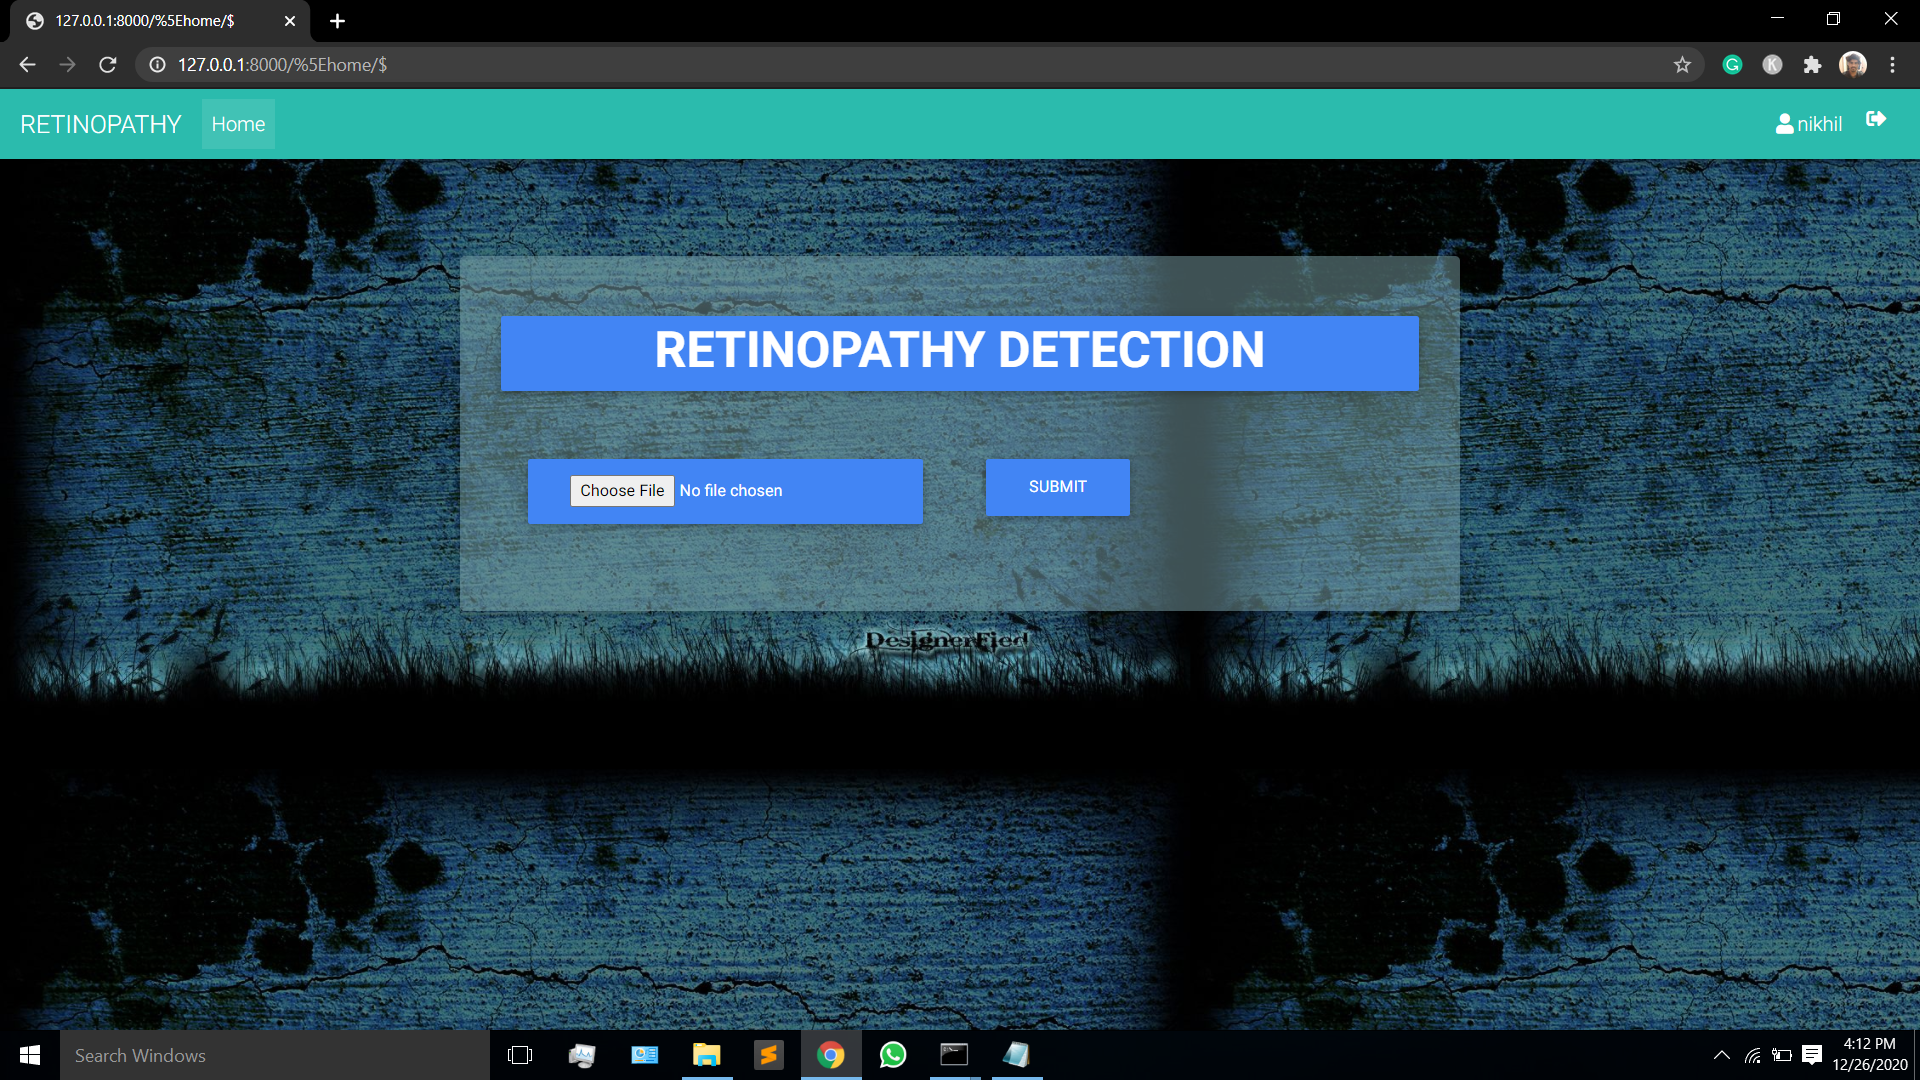 Prediction of Diabetic Retinopathy Using svm algorithm